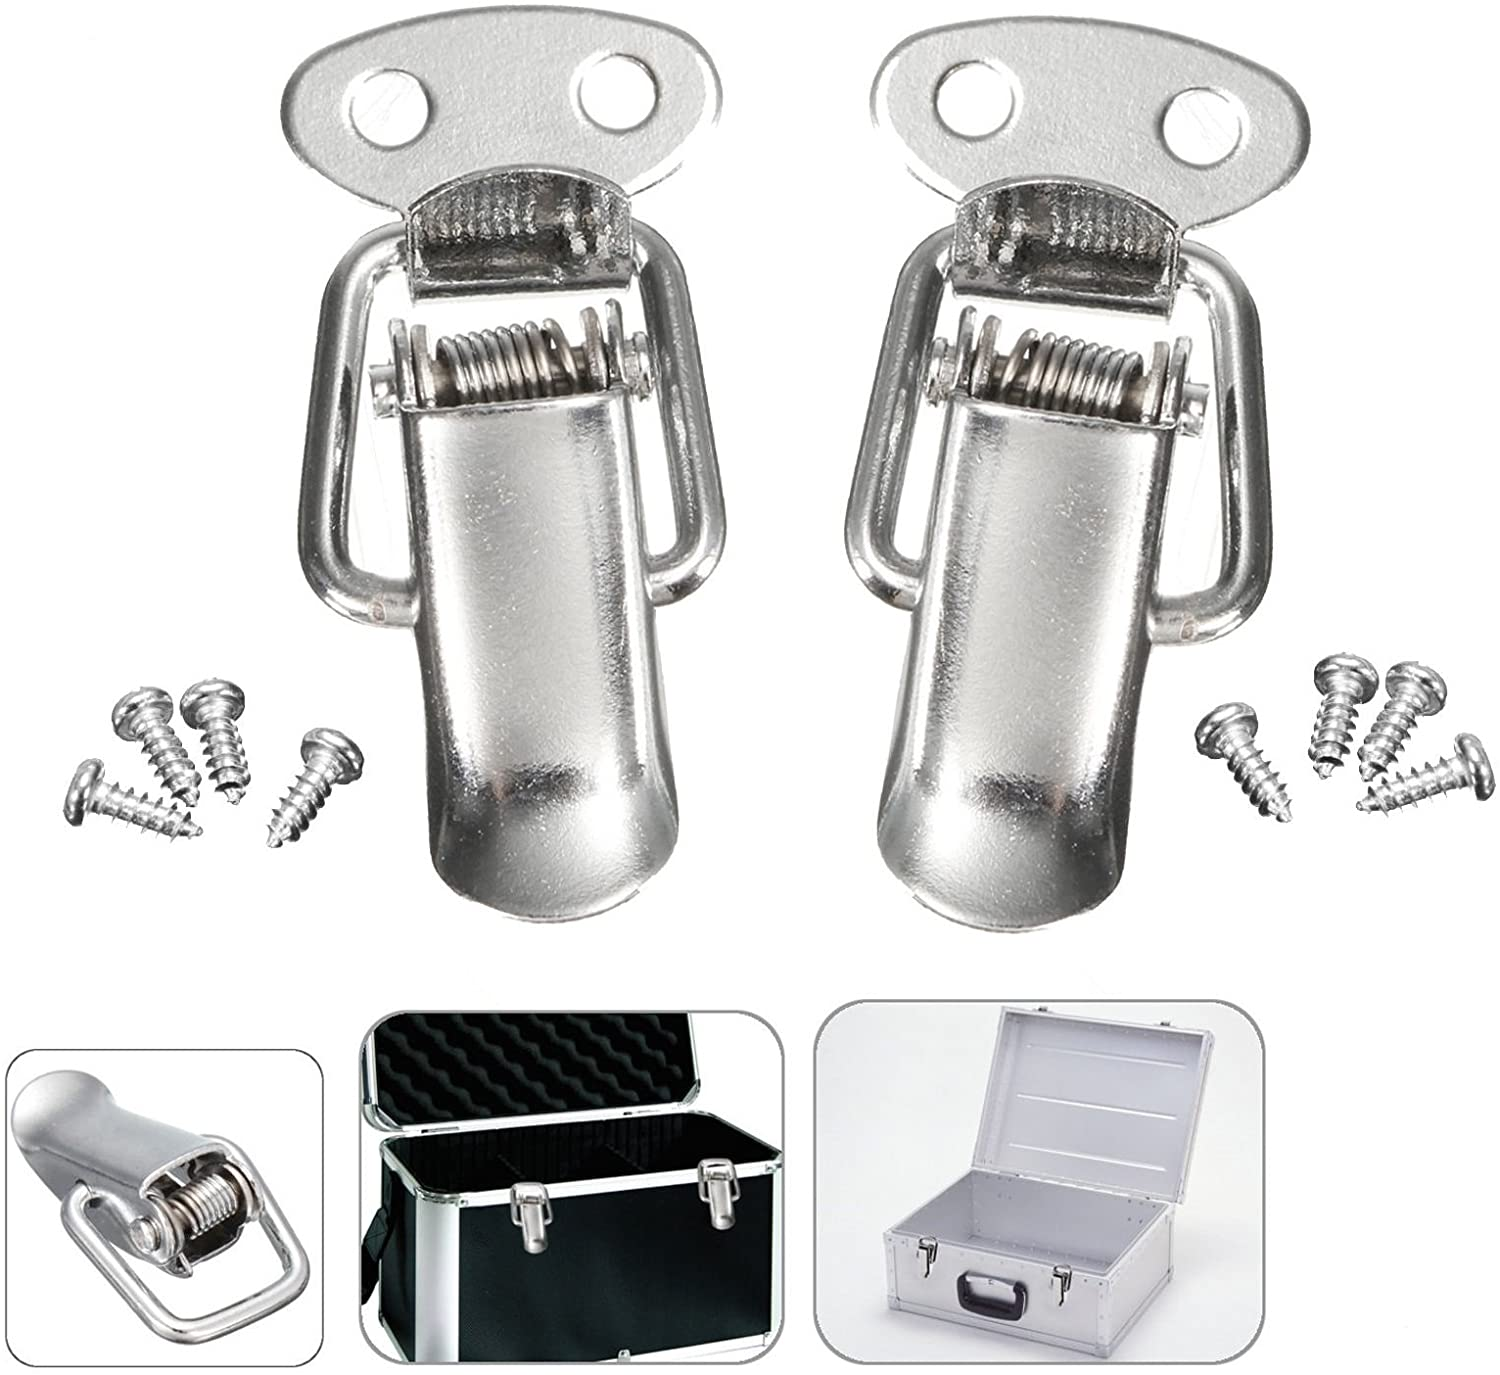 2 Sets of Stainless steel Toggle Box Spring Loaded Case Quick Release Door Cabinet Hasp Lock Latch